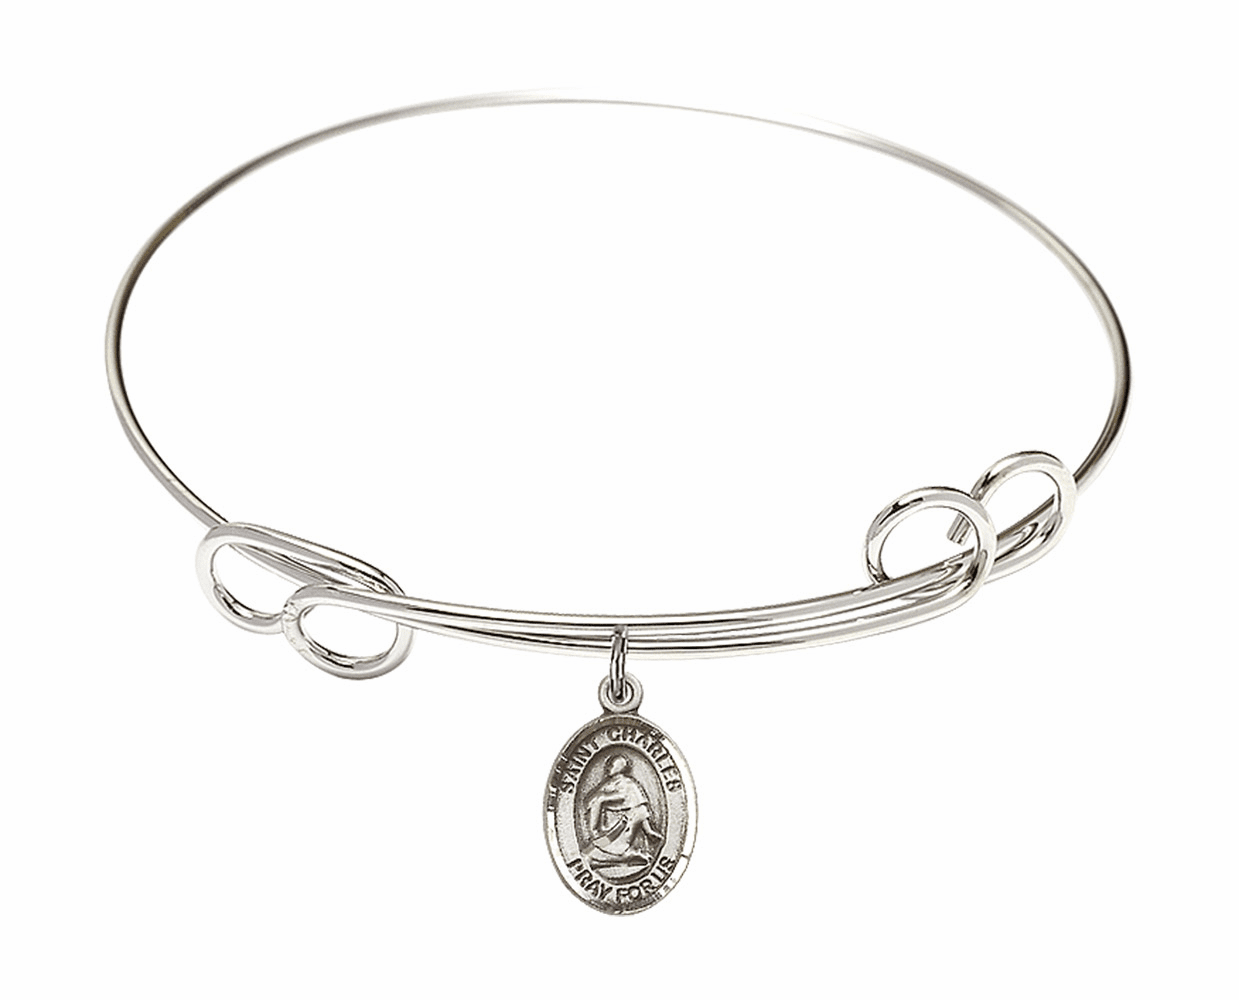 Round Loop St Charles Borromeo Bangle Charm Bracelet by Bliss